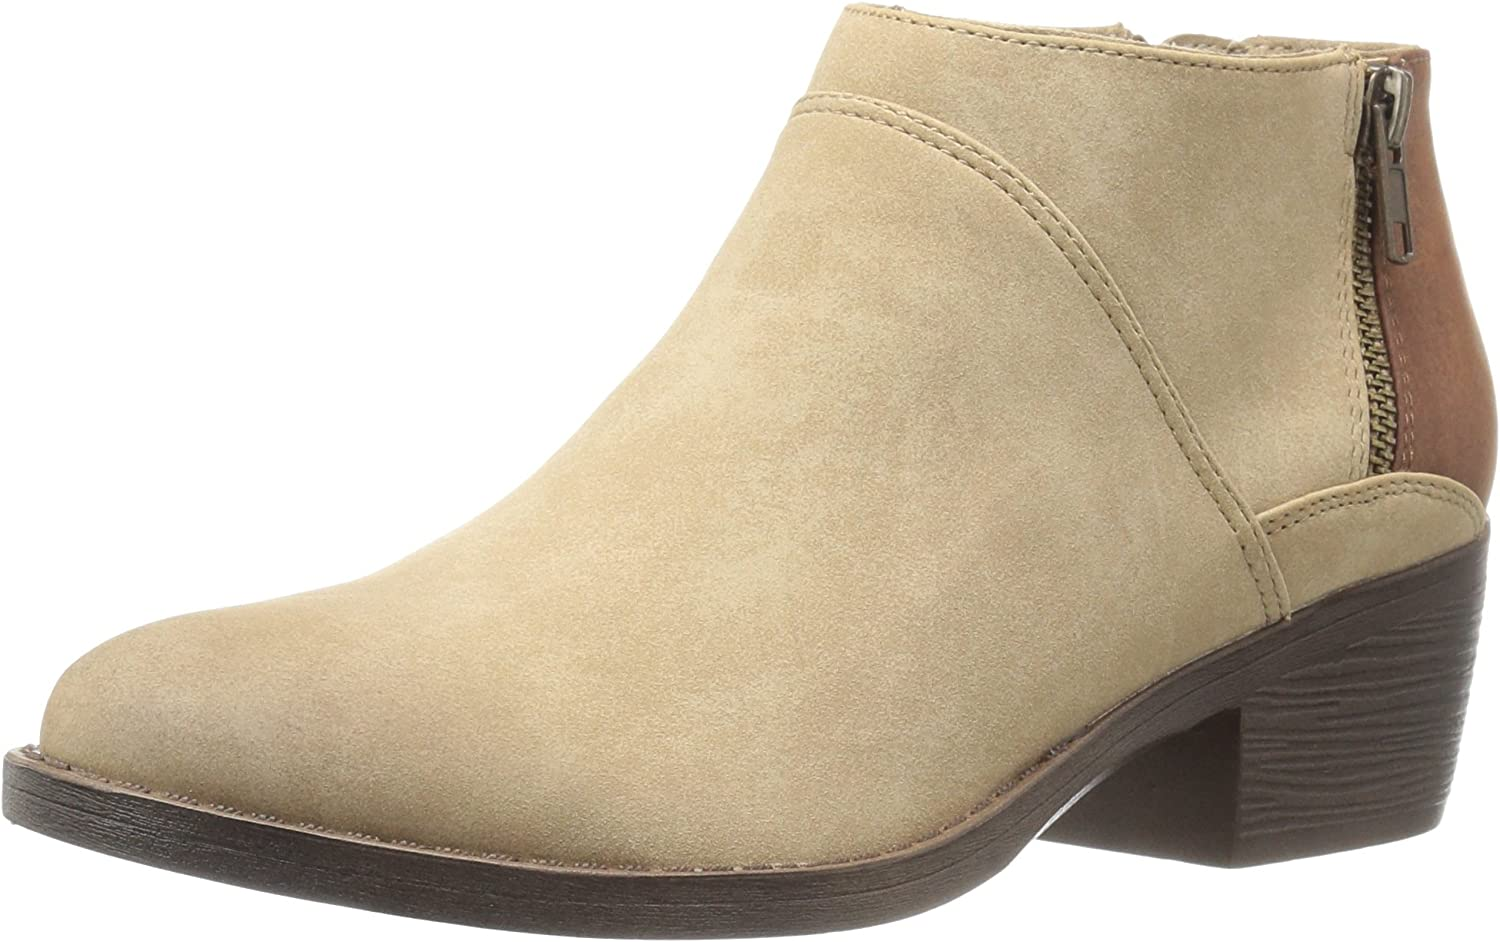 B&C Home Goods Womens Union Ankle Bootie